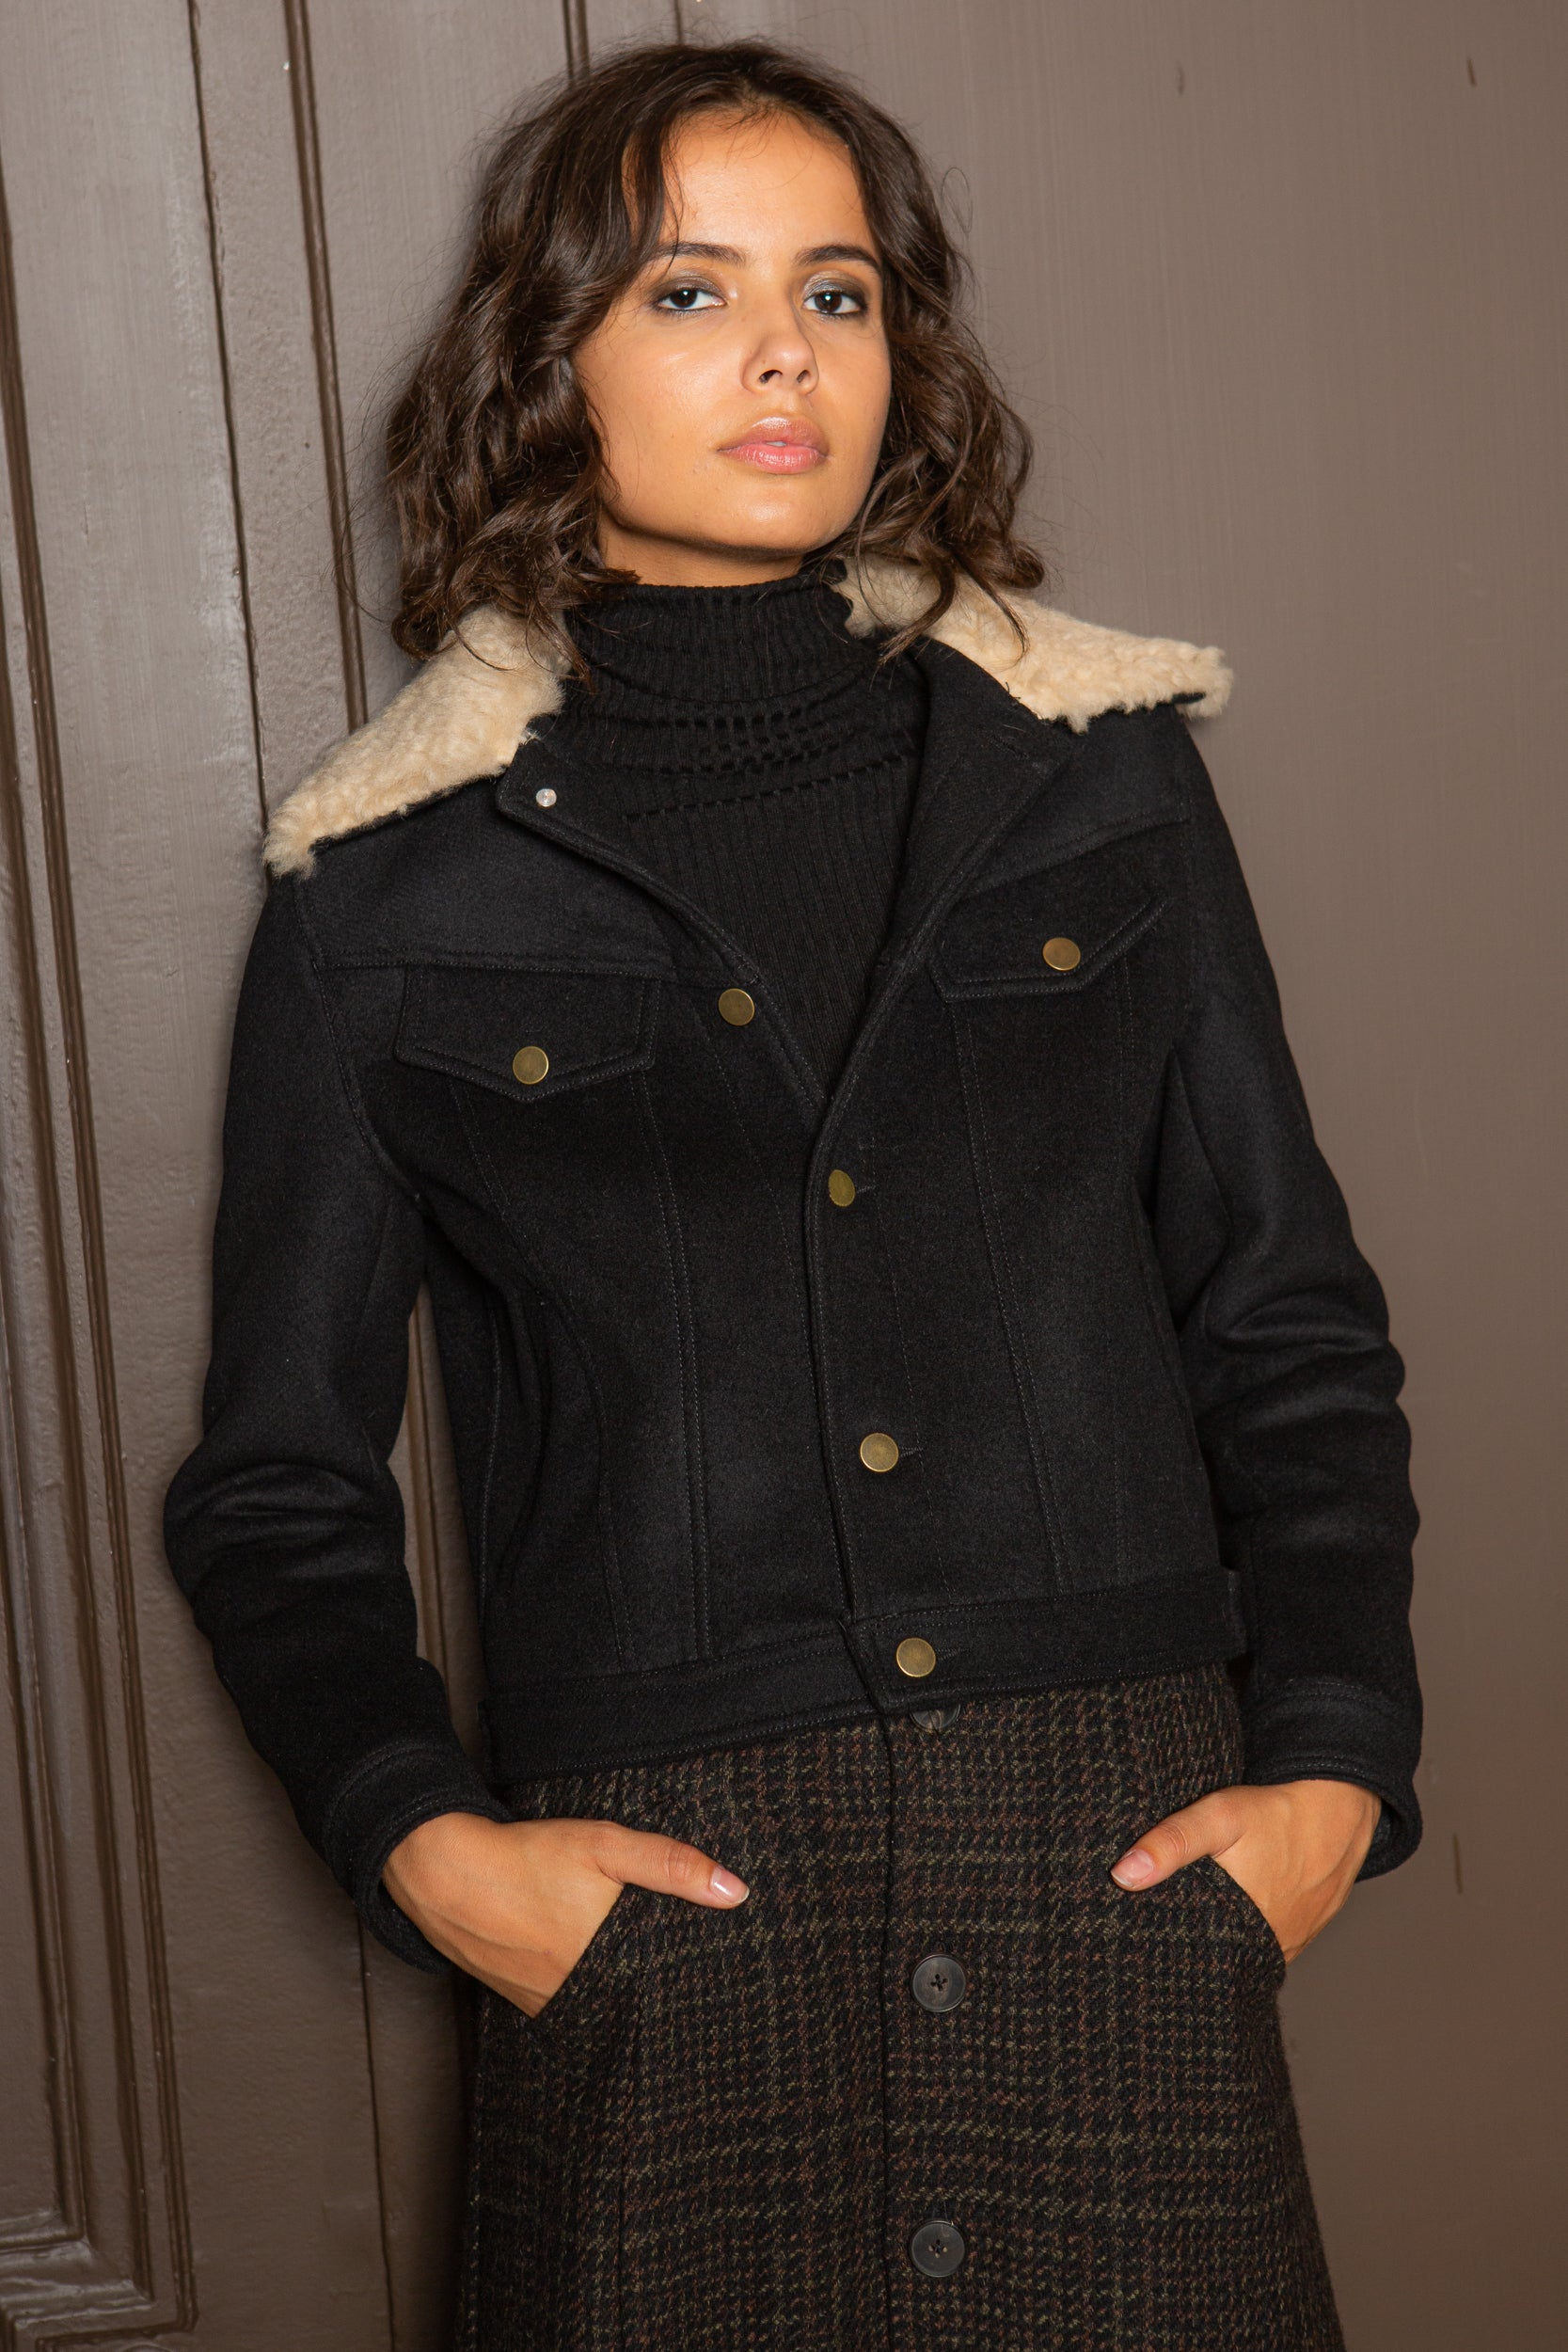 SHORT BLOUSON WITH SHEARLING COLLAR